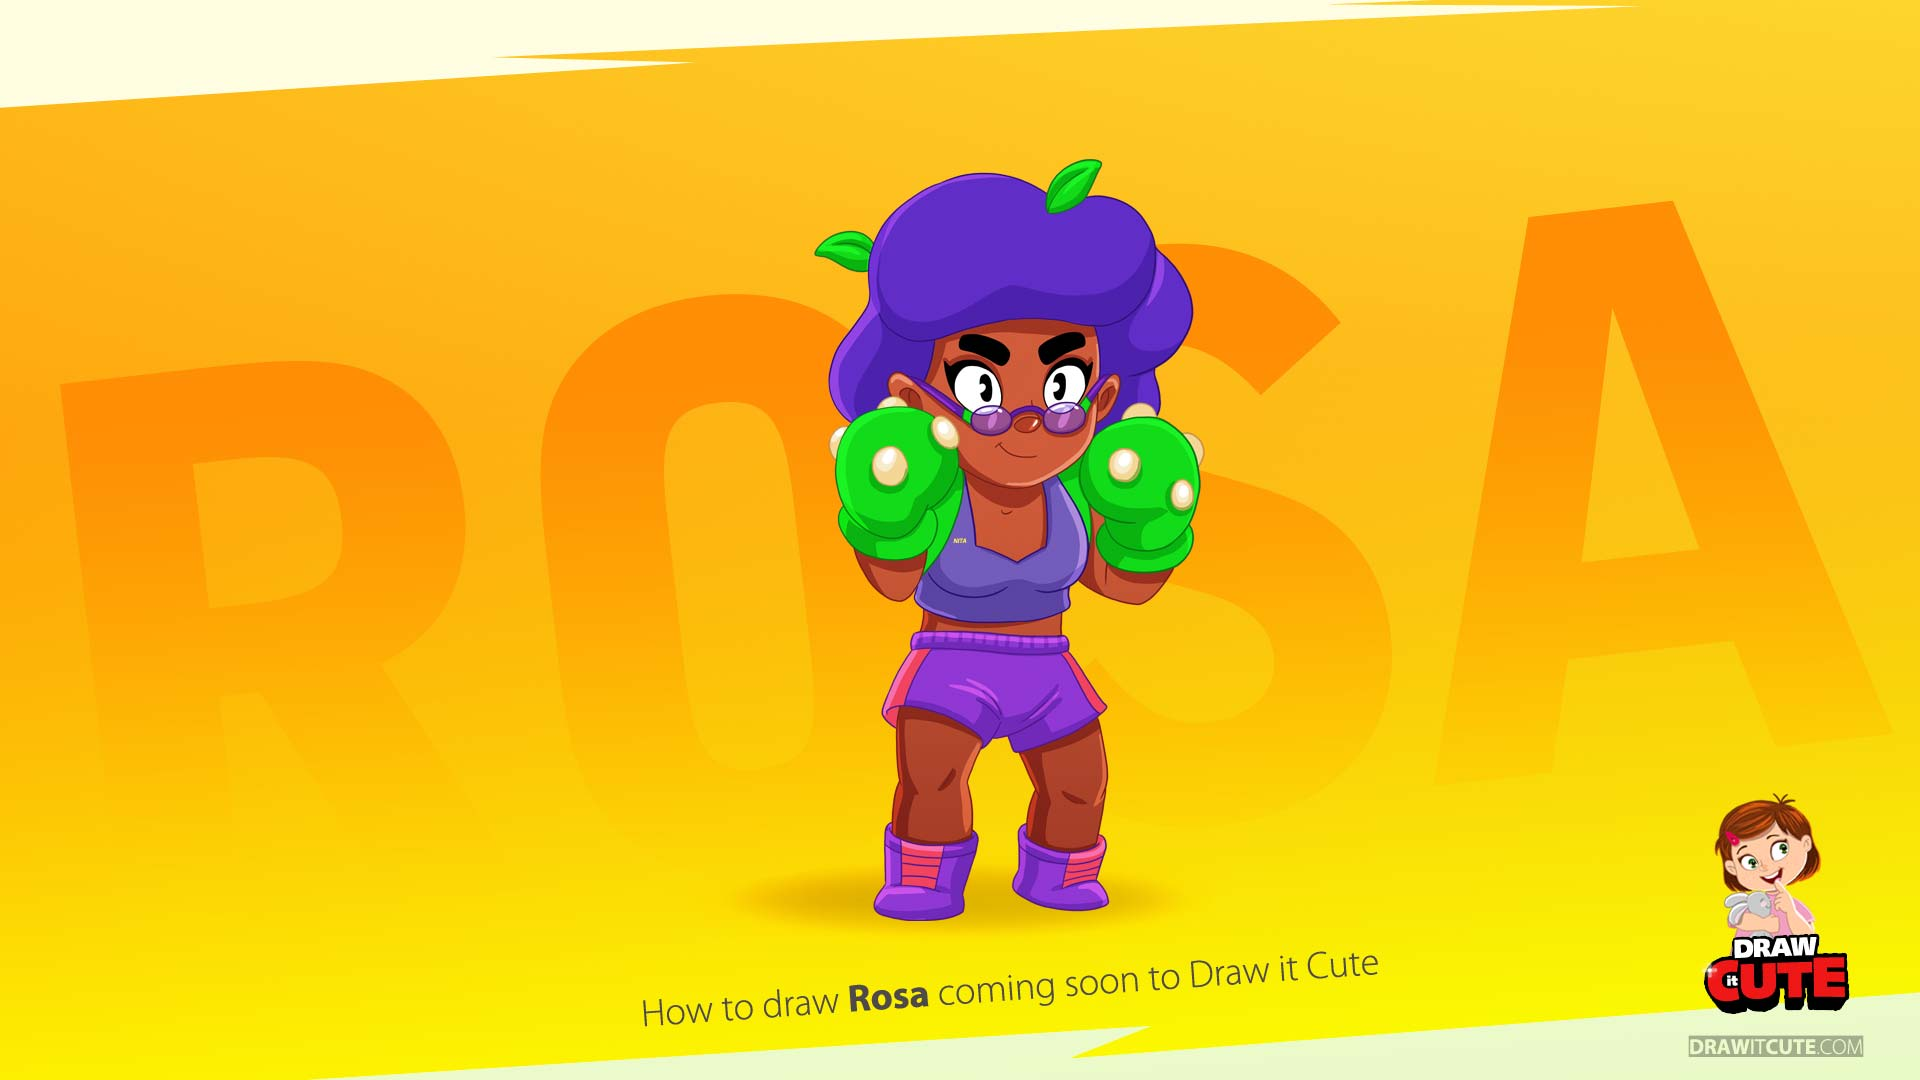 How To Draw Rosa Super Easy Brawl Stars By Drawitcute On Deviantart